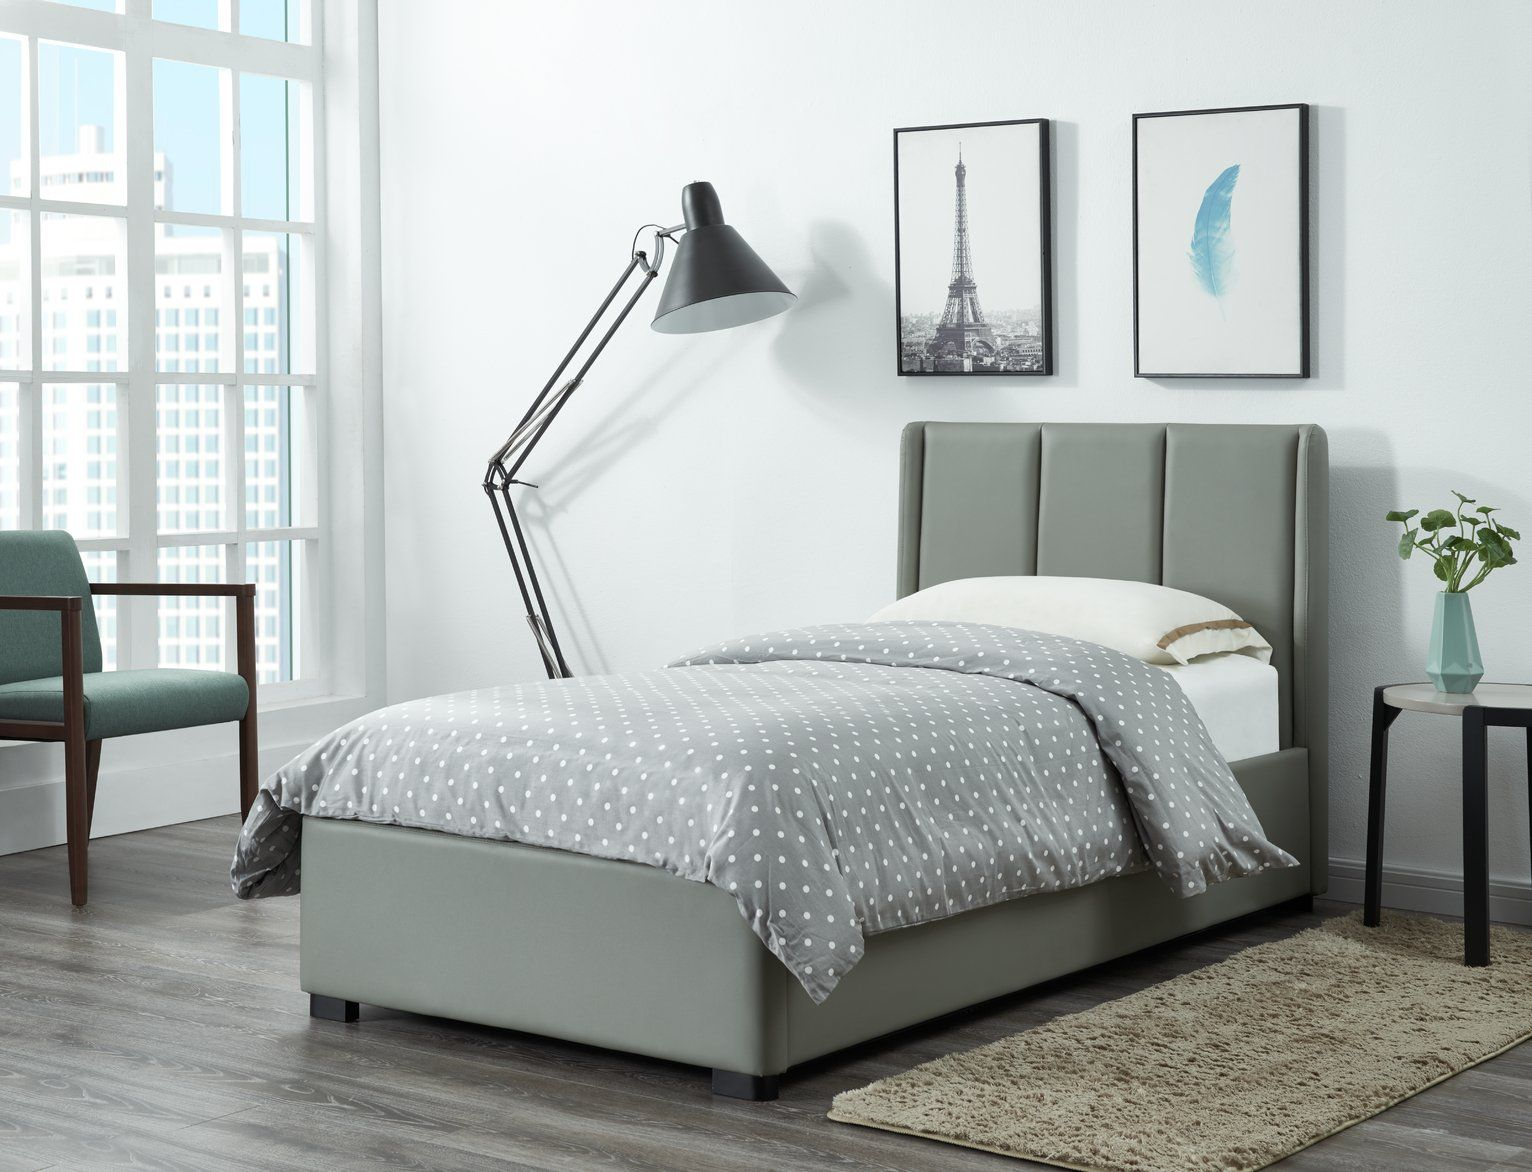 Buy Argos Home Austen Ottoman Single Bed Frame Grey Bed Frames